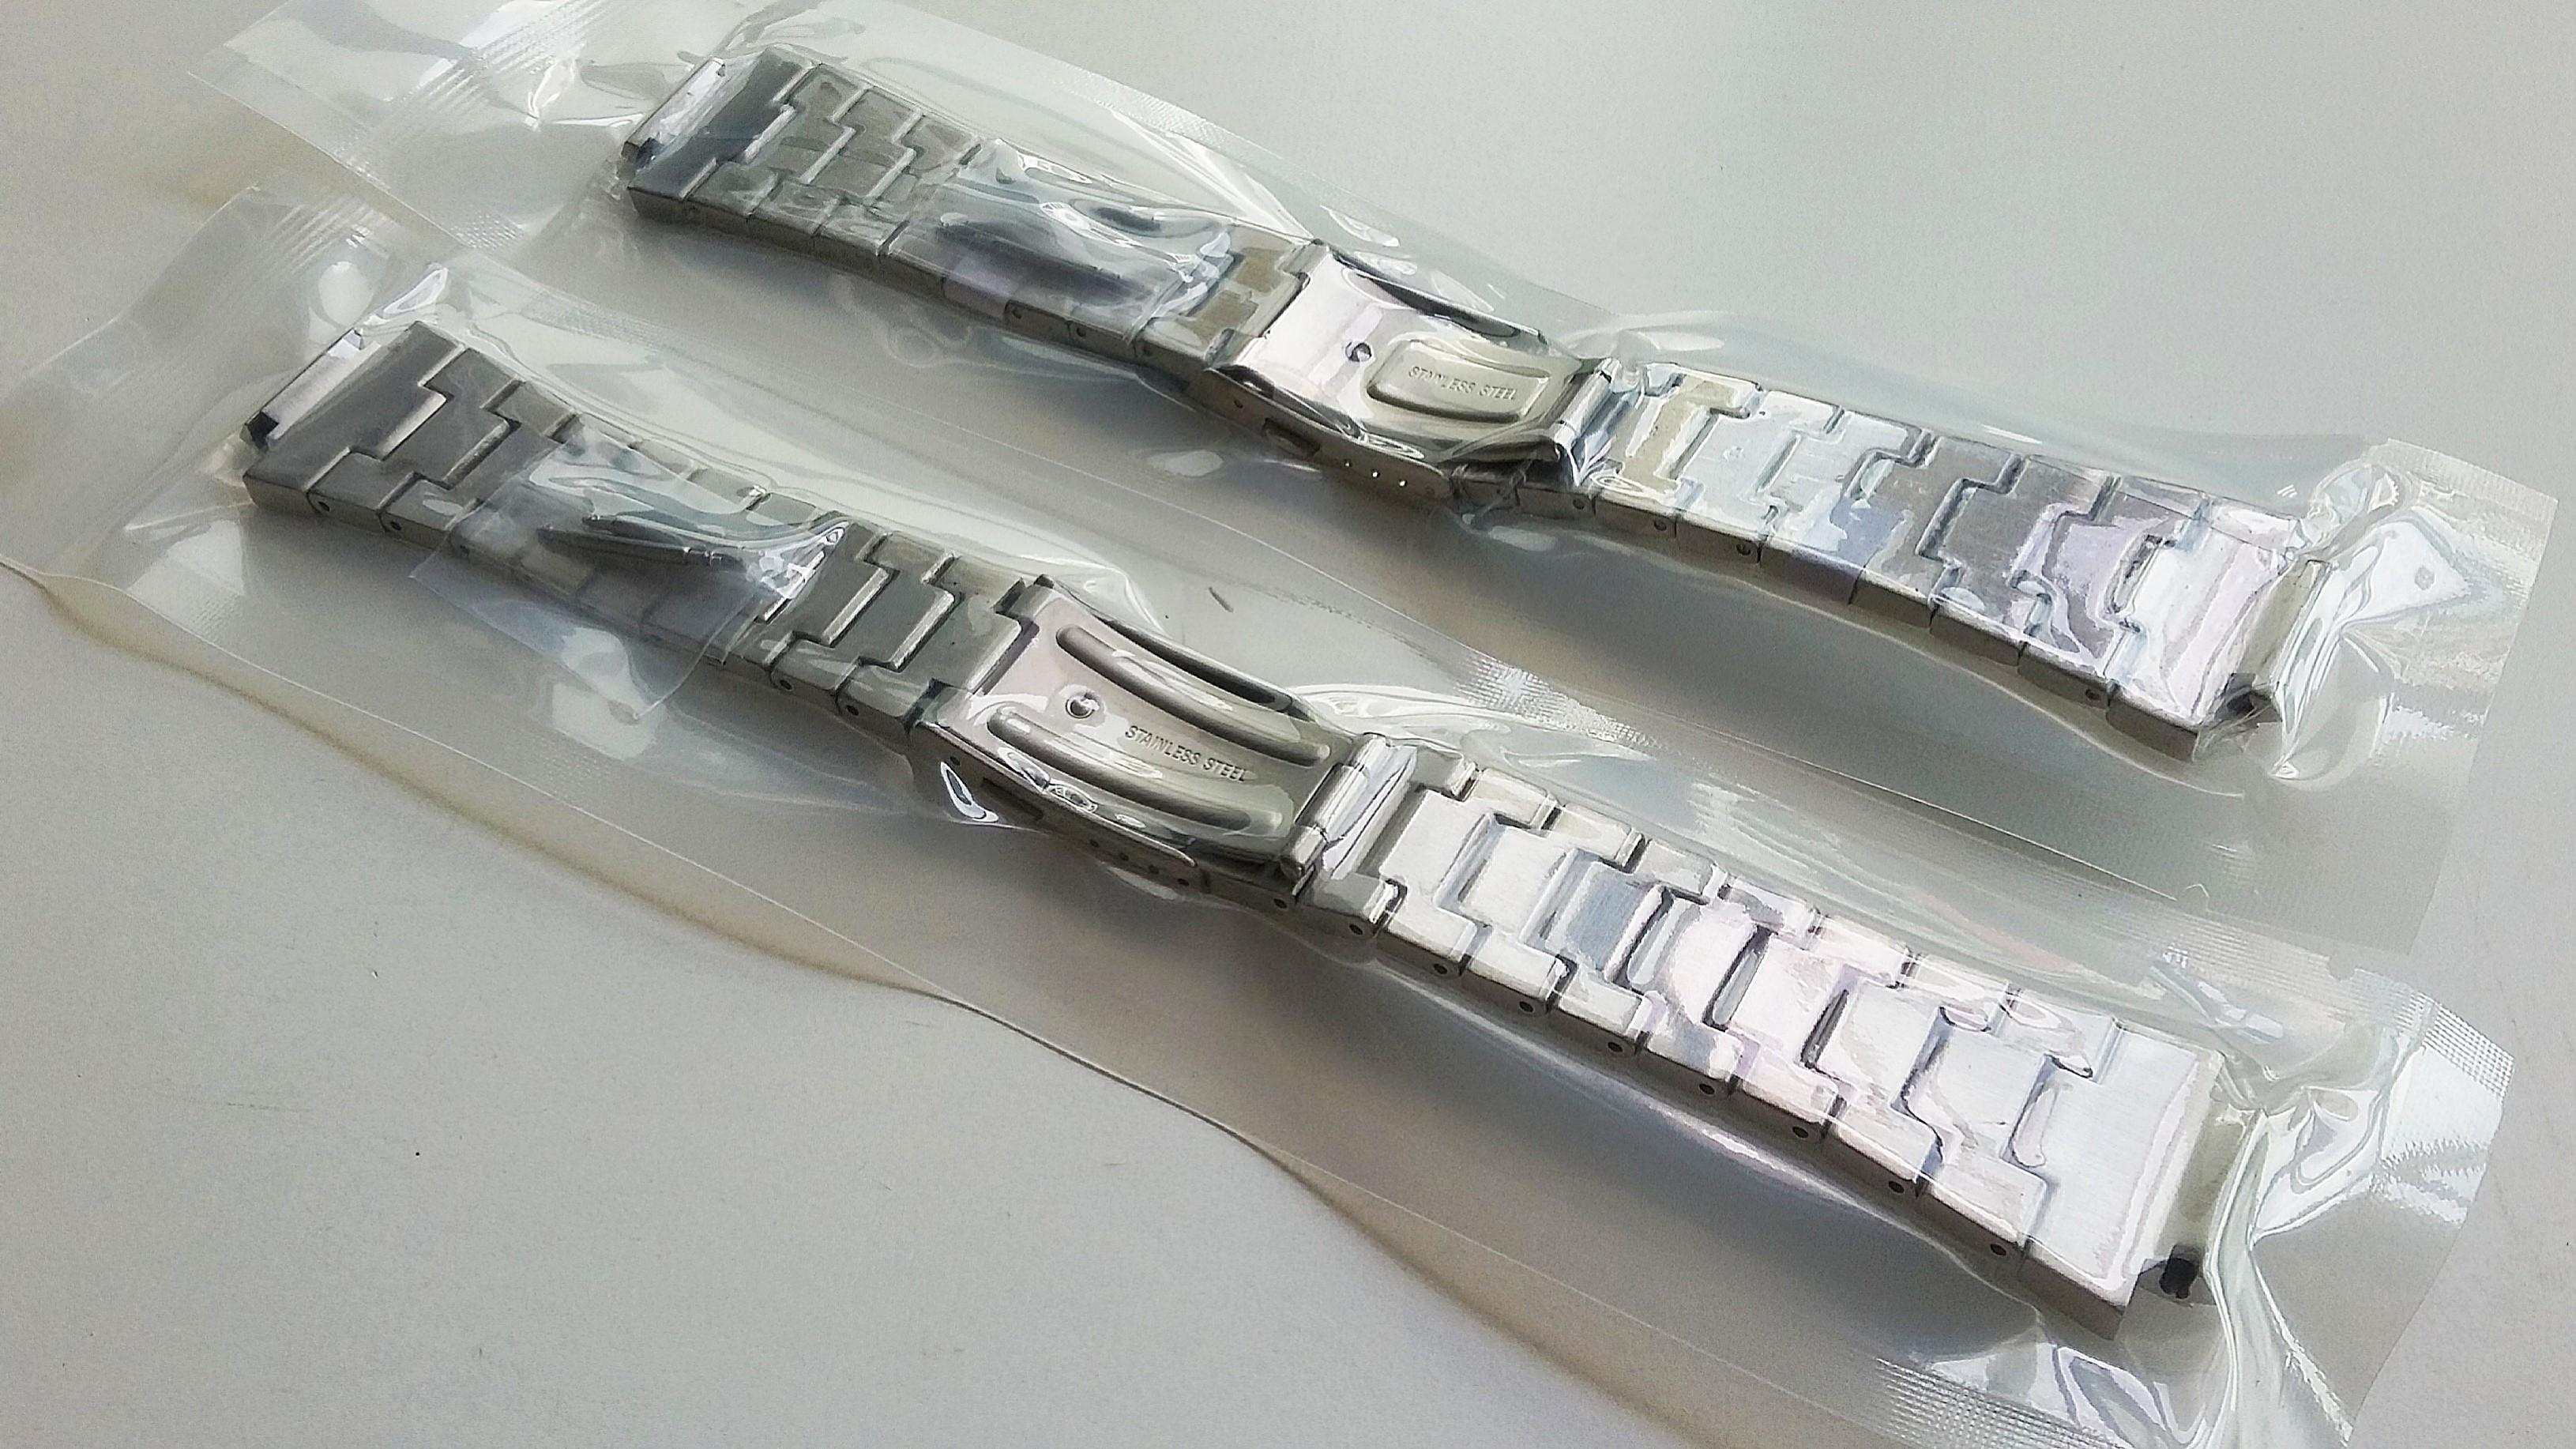 316L STAINLESS STEEL PROTECTIVE CASE AND BRACELET (FULL BOX VERSION) FOR G-SHOCK  CASIO DW5600 GW-M5610 GLX5600 GW-5000 5035  DW-5000 (PRICE INCLUDE M0DIFICATION)